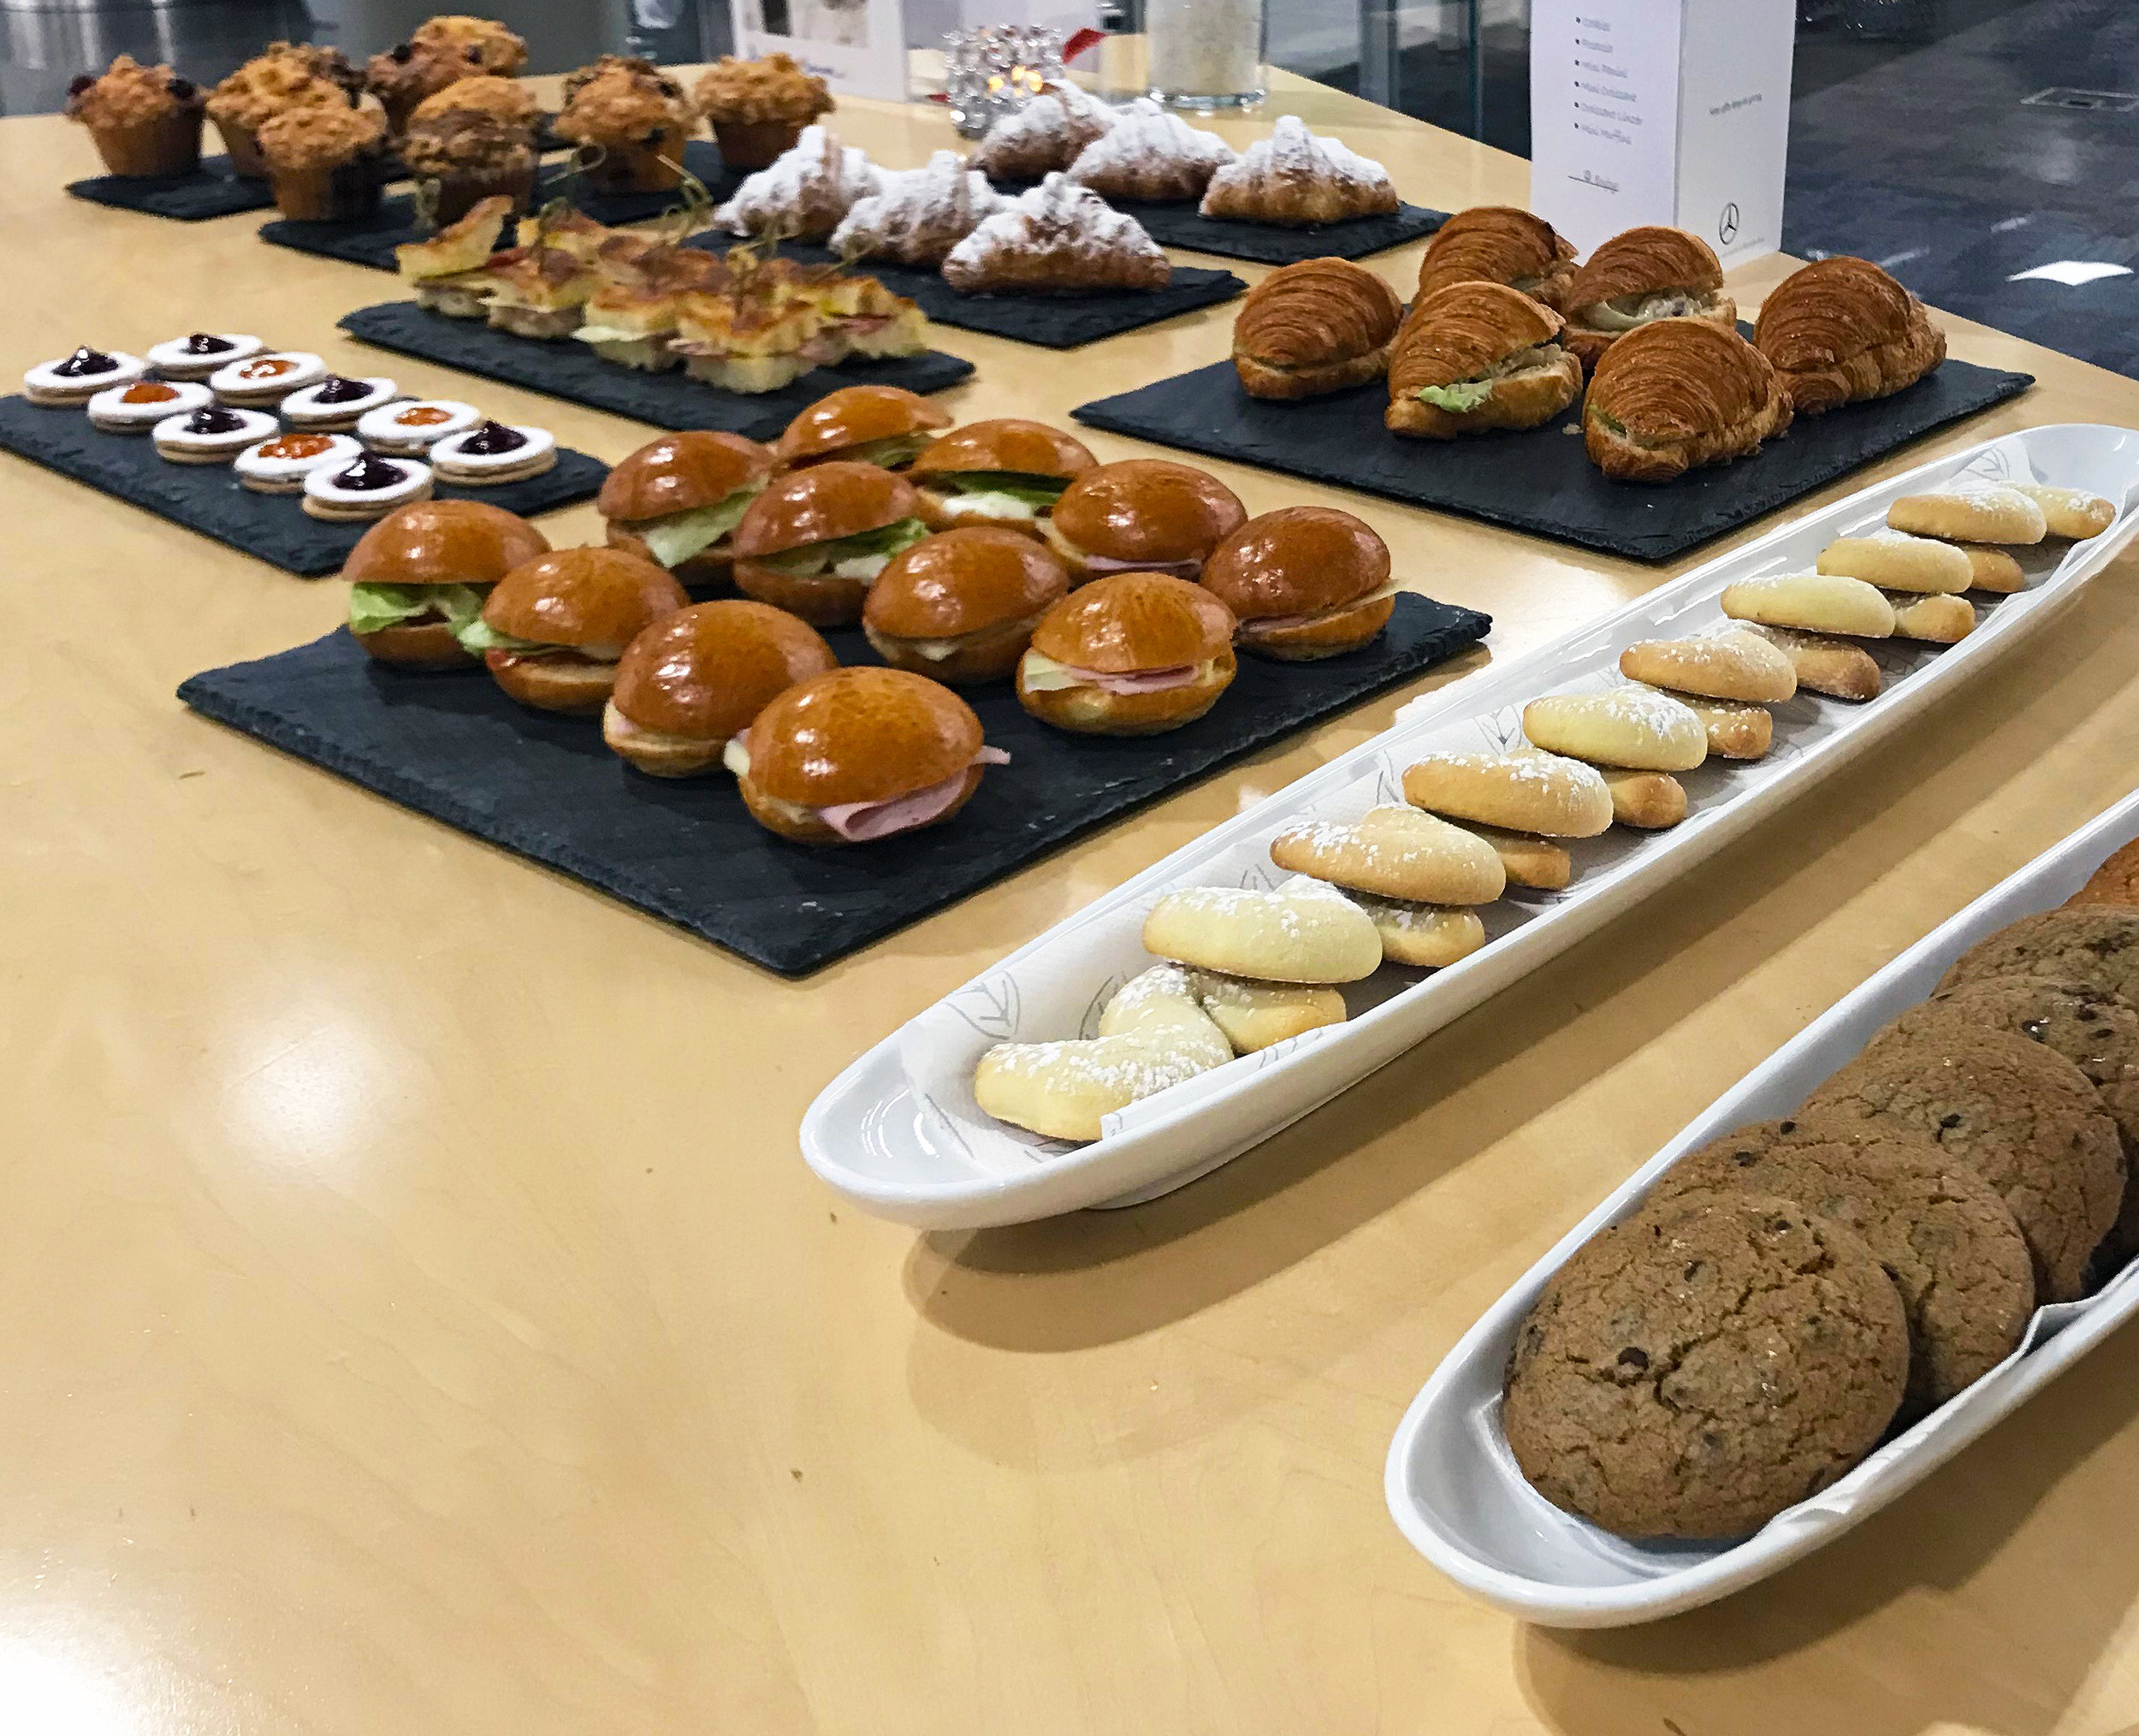 A DELICIOUS BREAKFAST PREPARED BY PIE CORPS, with COOKIES, CROISSANTS, SANDWICHES, MUFFINS